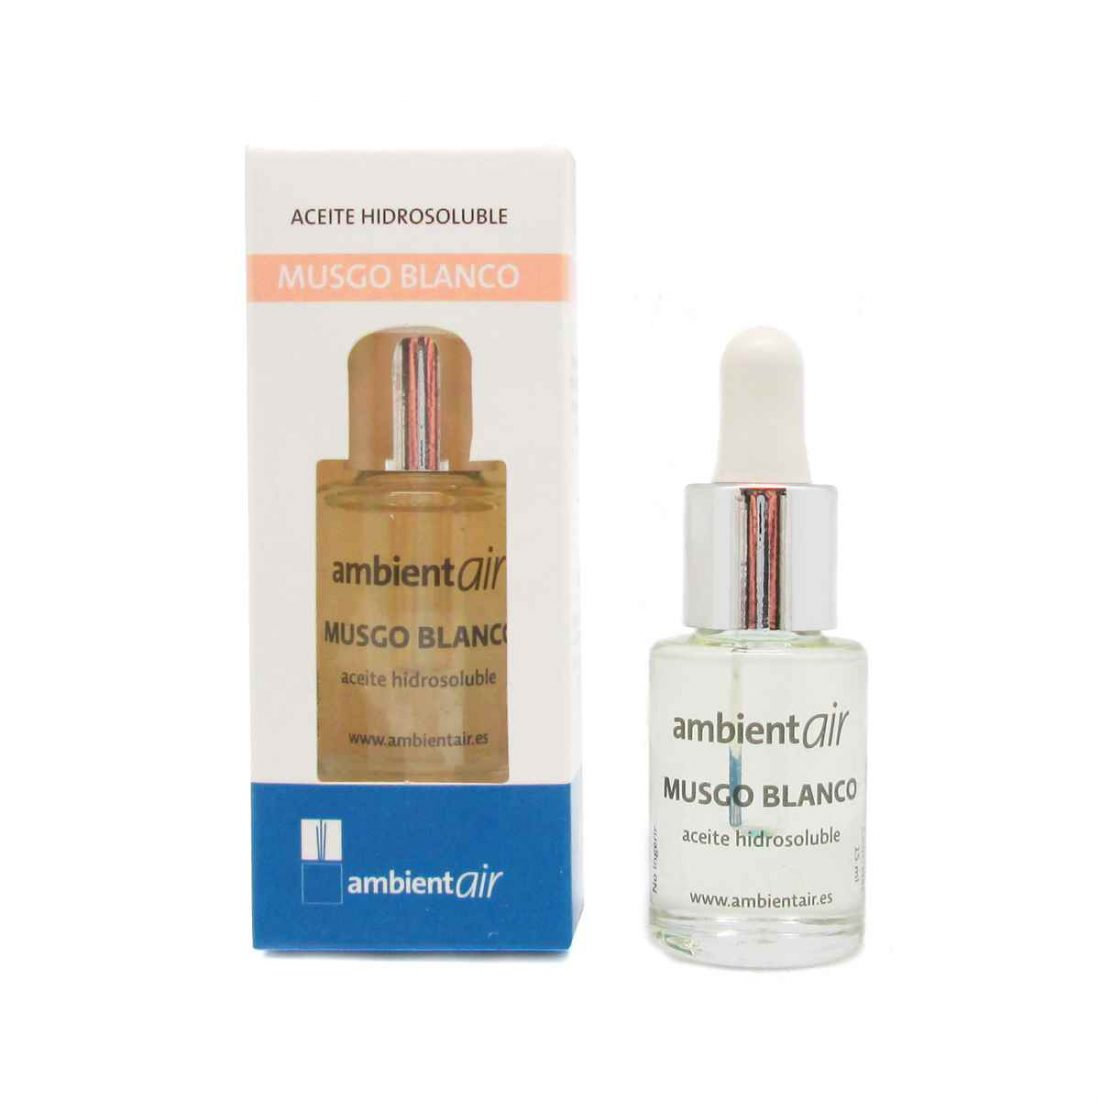 Ambientair Classic Aceite esencial Aroma Musgo blanco 15ml